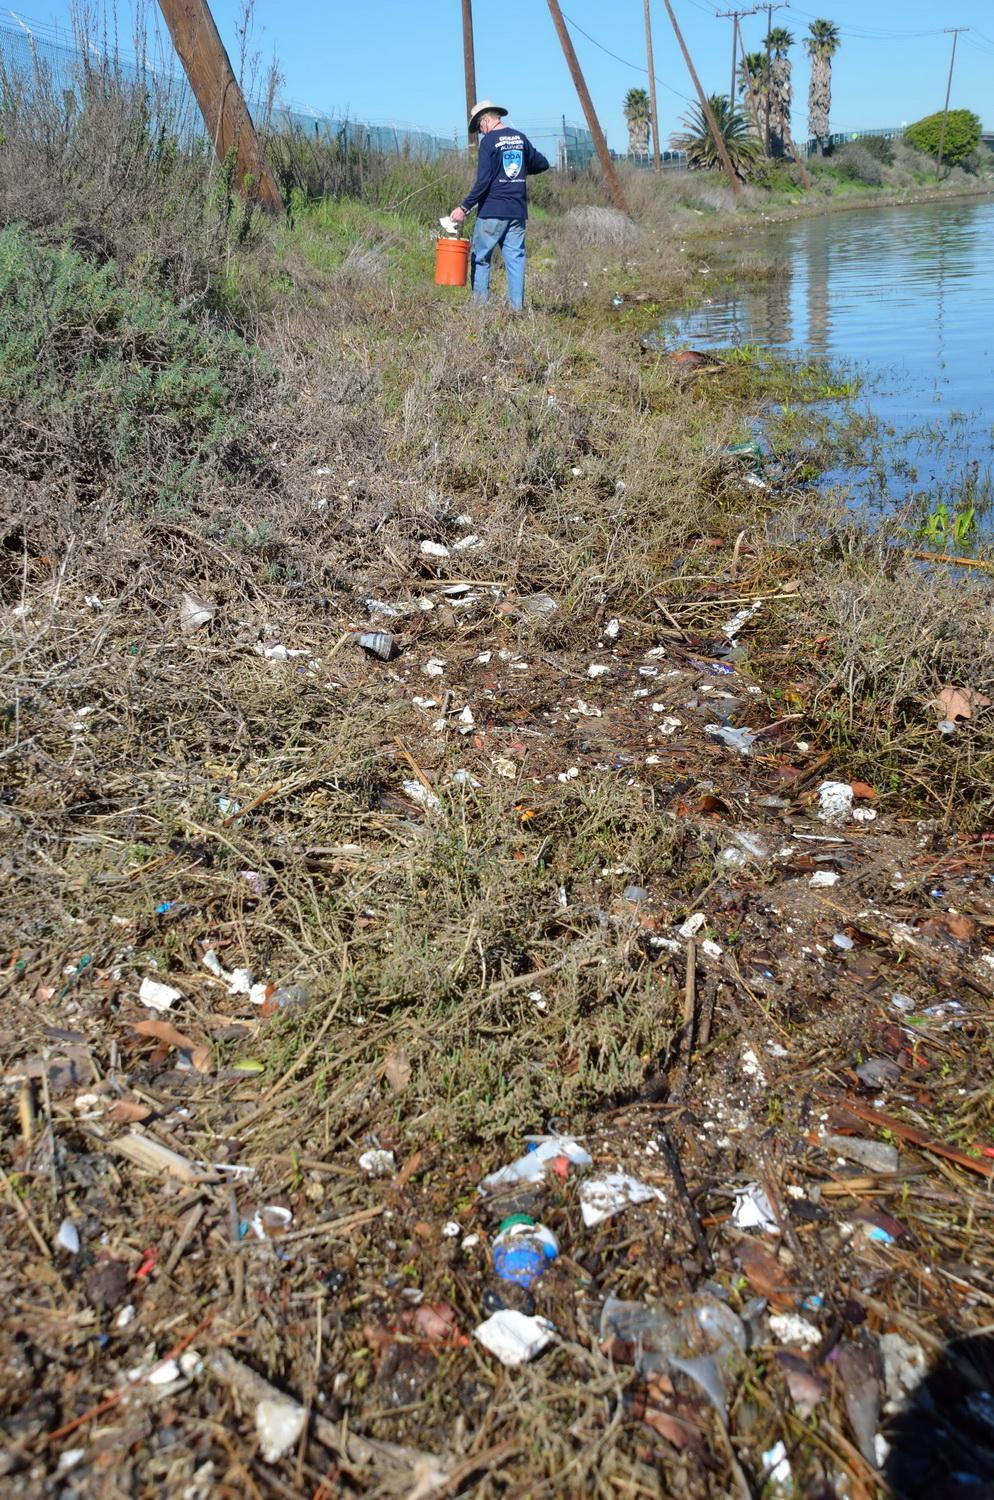 Alamitos Trail of trash with Jim Lieber